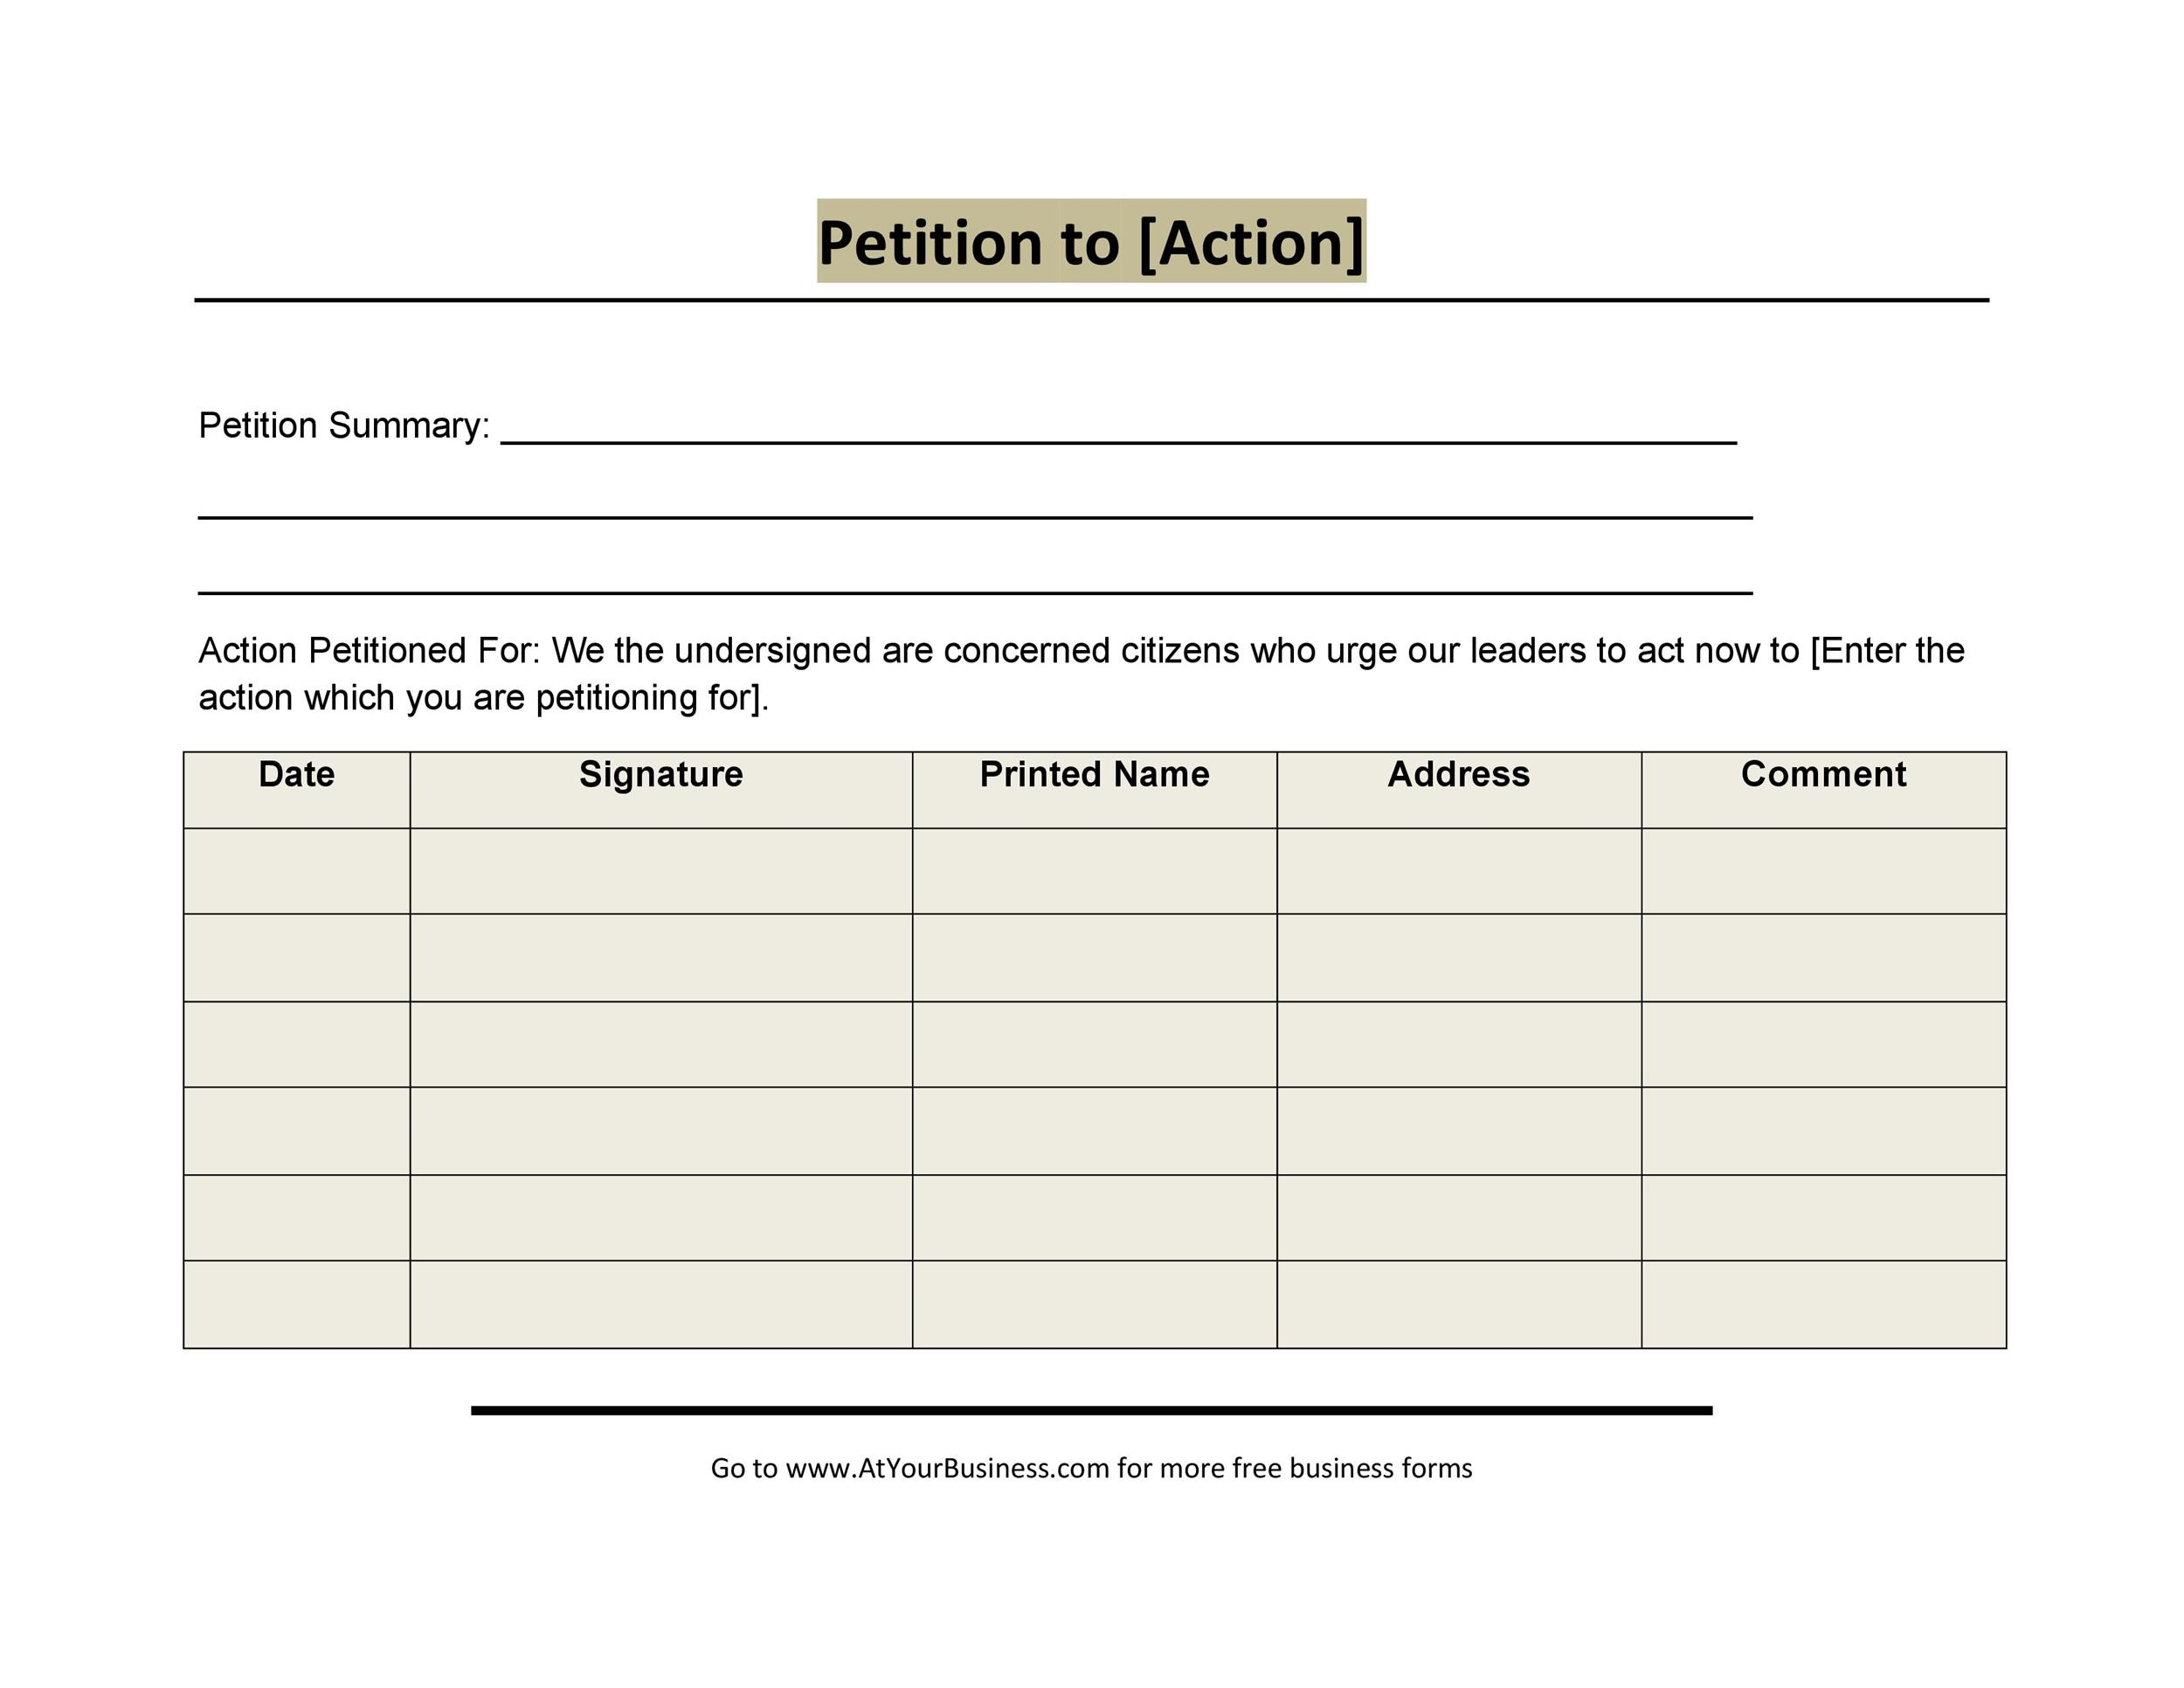 30 Petition Templates + How To Write Petition Guide - creating signers form for petition